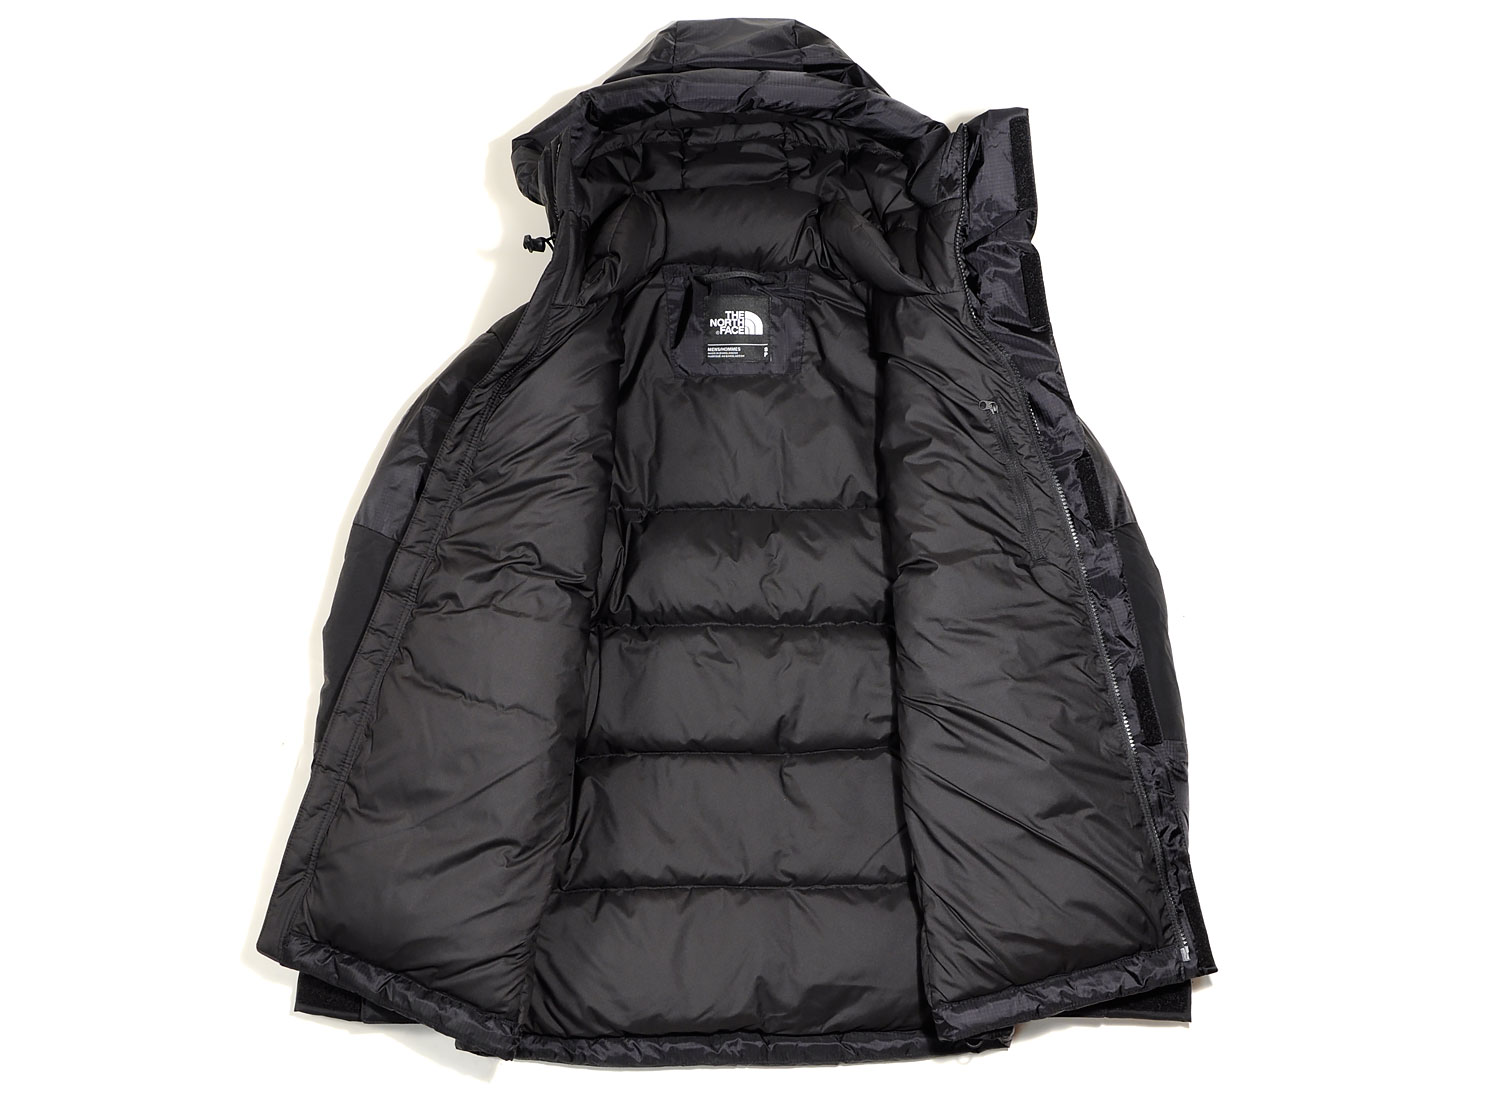 de67b6ea7 The North Face Original Himalayan Windstopper Down Black